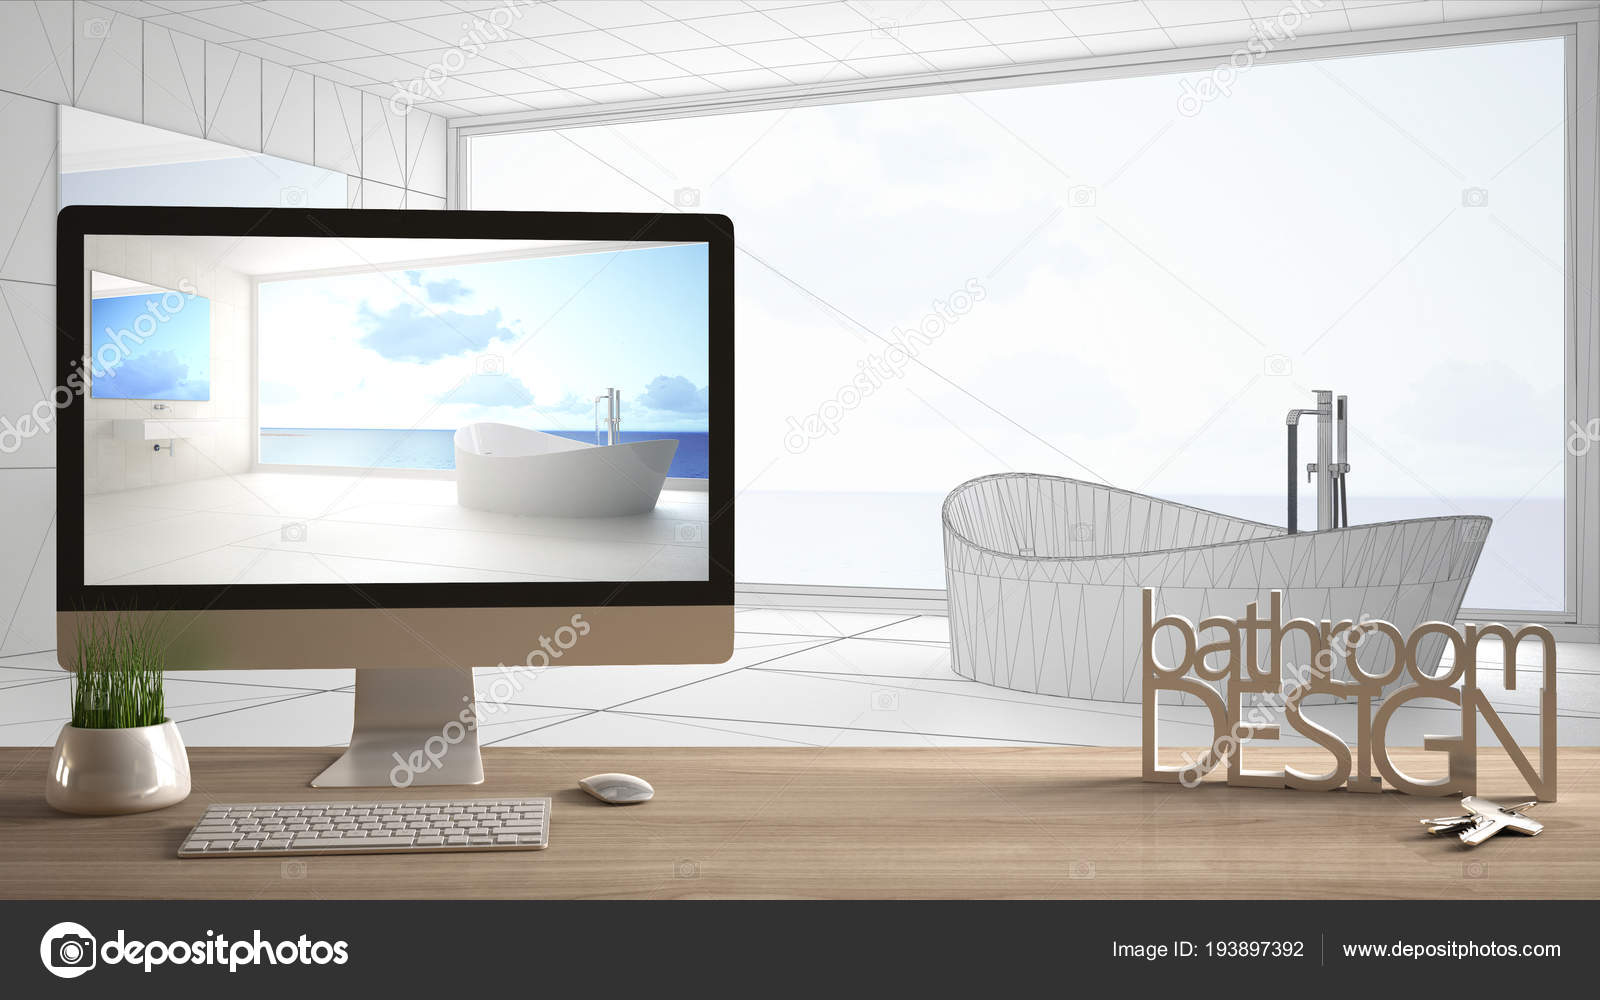 Architect Designer Project Concept Wooden Table With Keys 3d Letters Words Bathroom Design And Desktop Showing Draft Blueprint Cad Sketch In The Background White Interior Design Stock Photo C Archiviz 193897392